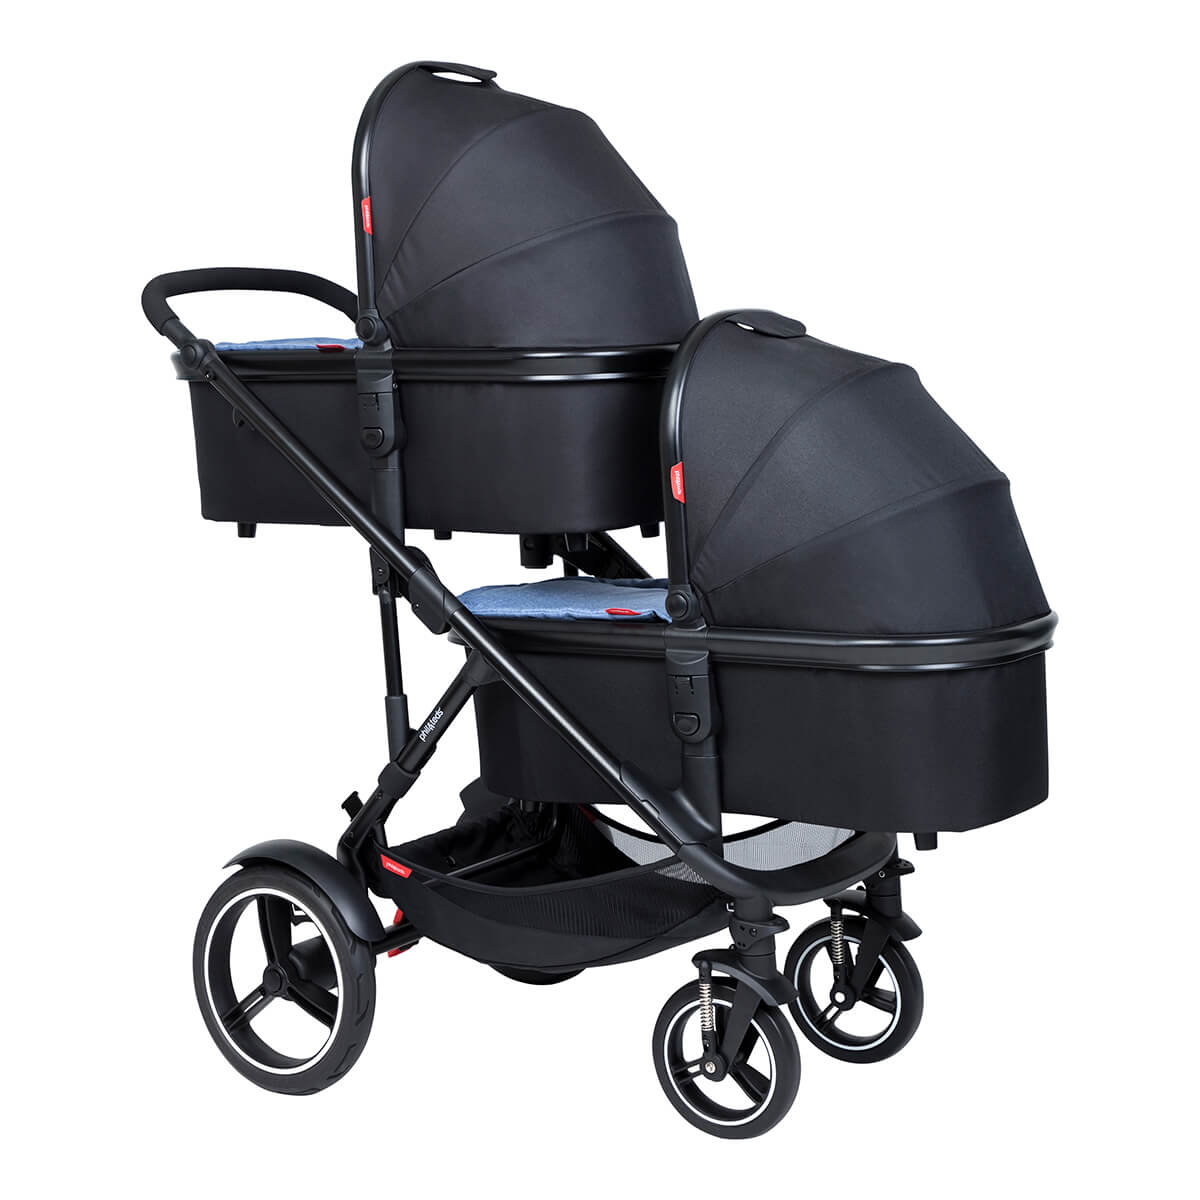 https://cdn.accentuate.io/4509529309272/19272668414040/philteds-voyager-inline-buggy-with-double-snug-carrycots-v1626484659701.jpg?1200x1200